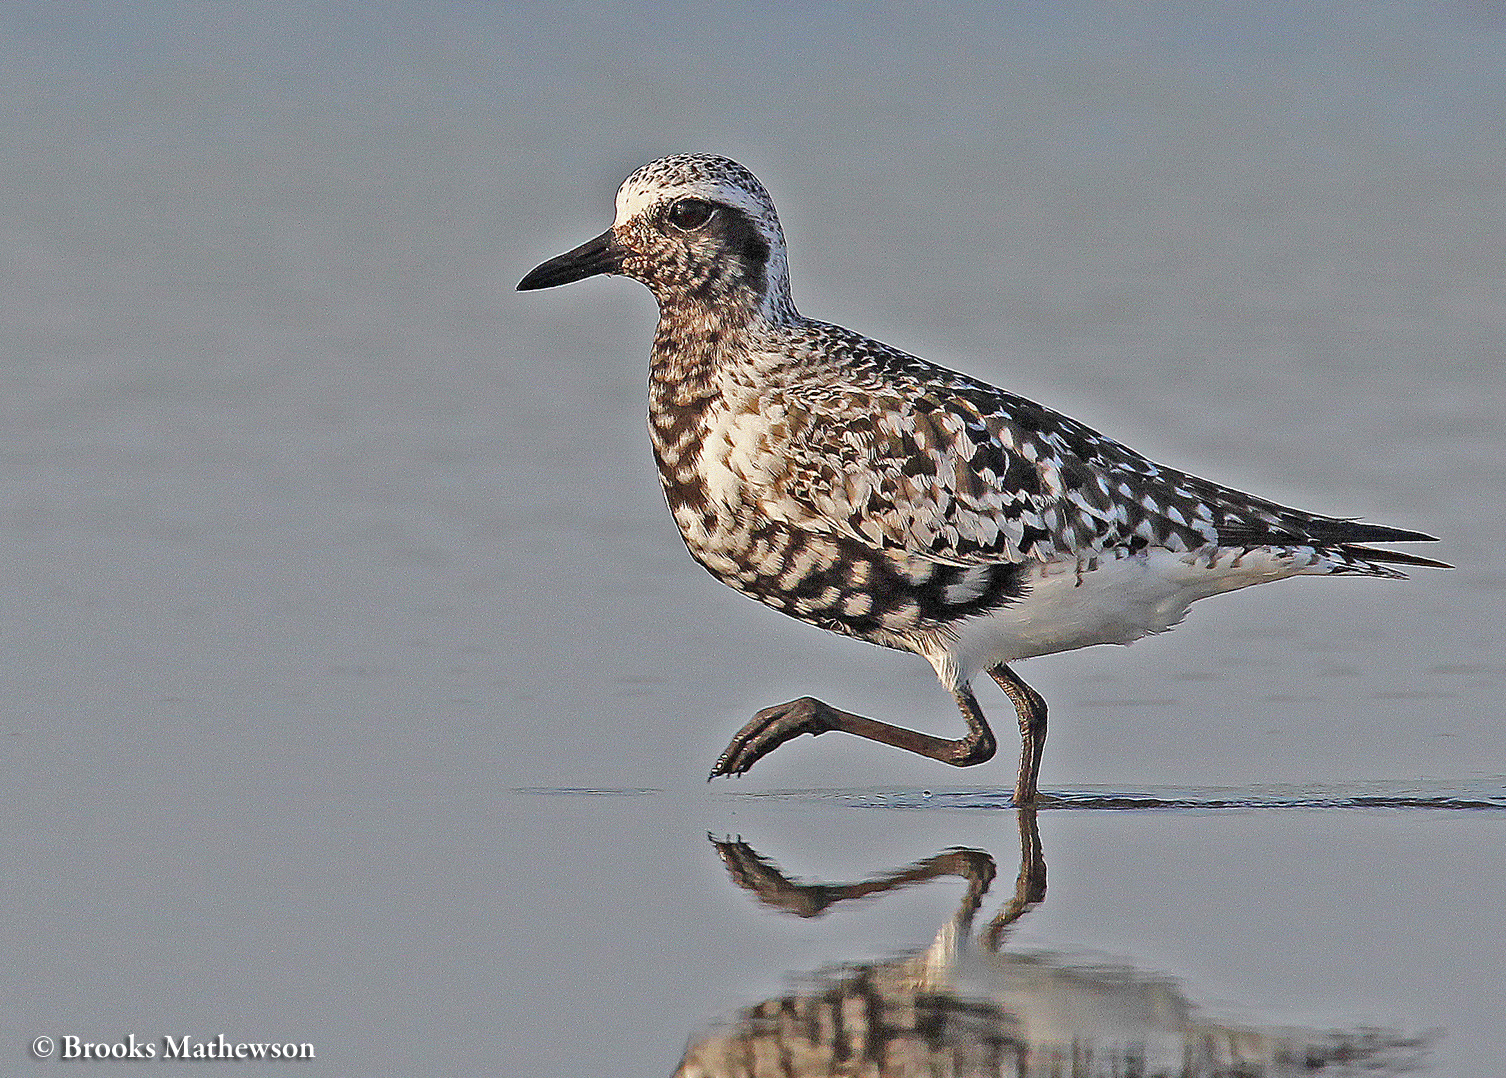 A Black-bellied Plover at risk of existential crisis as the blackness of his belly recedes in the fall